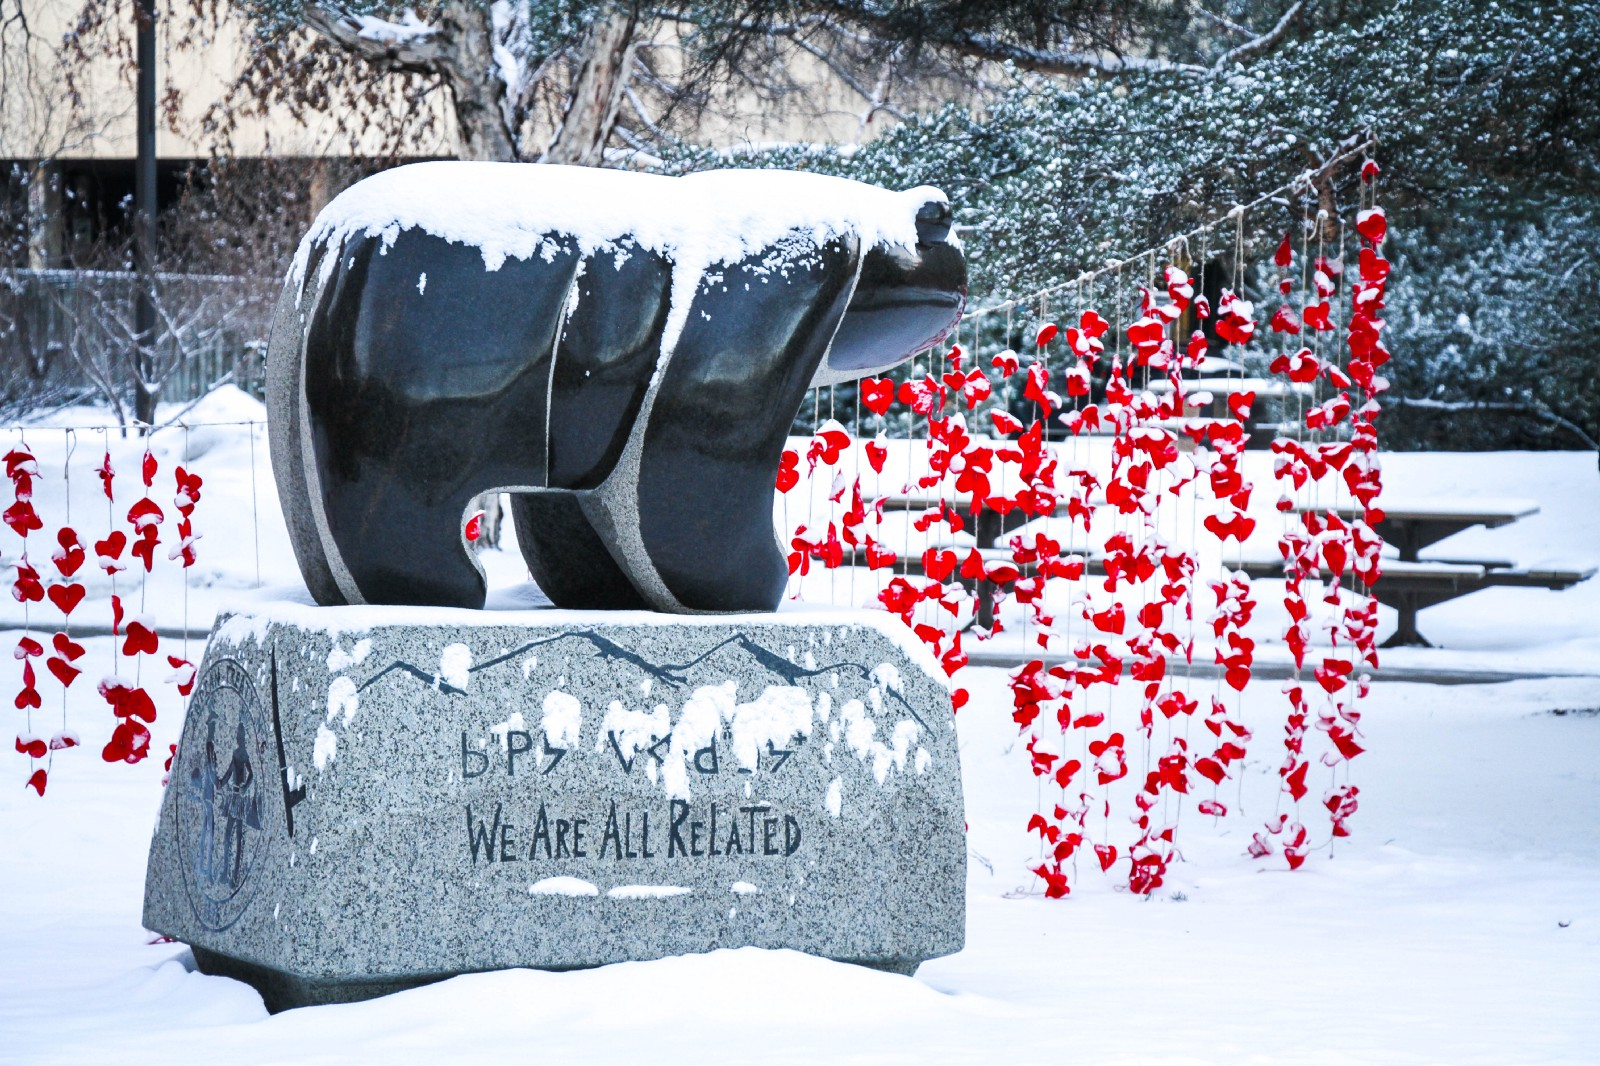 Photograph of the Sweetgrass Bear in U of A's Quad covered in snow, with red art piece in background.